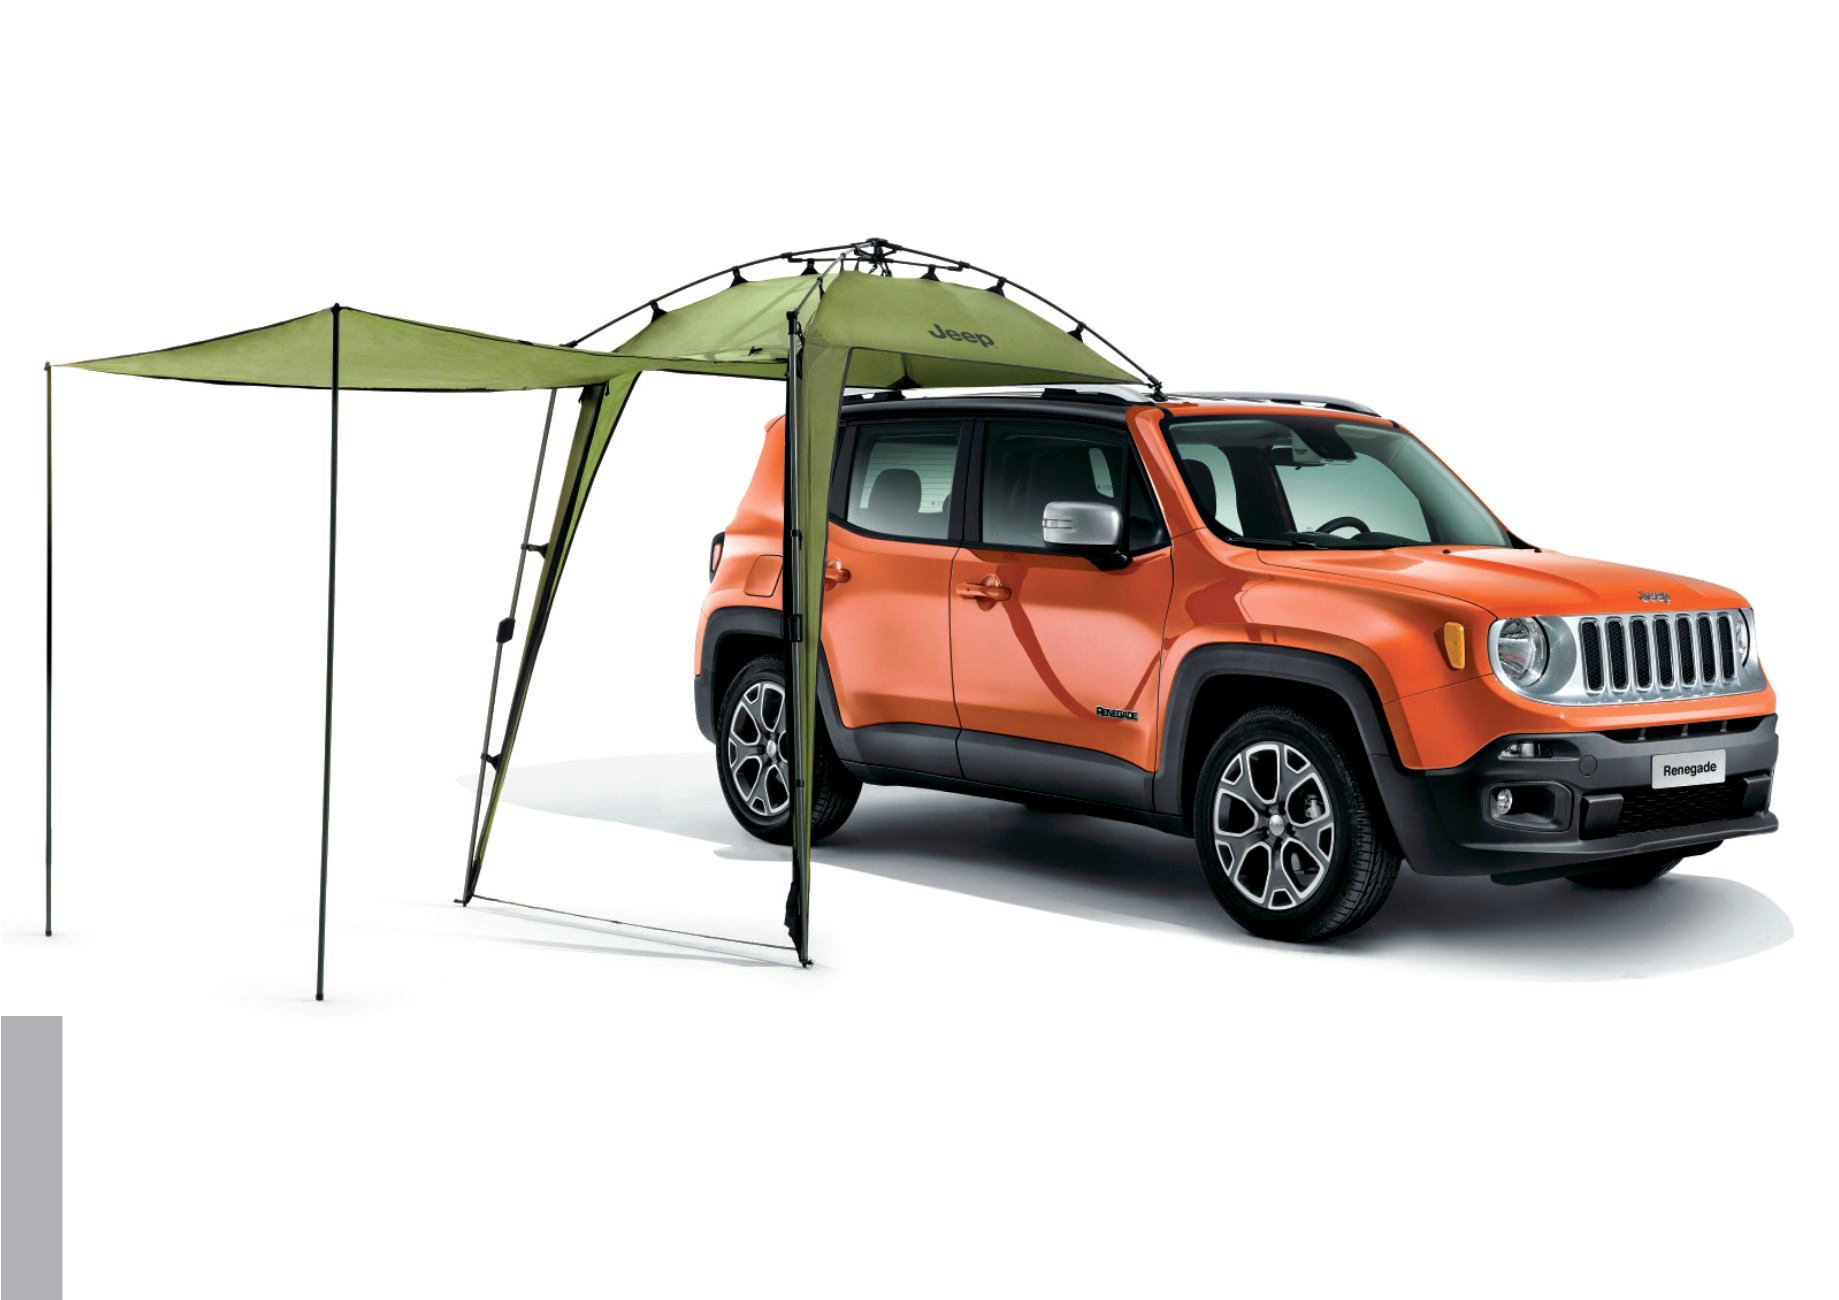 jeep renegade accessoires d origine by mopar. Black Bedroom Furniture Sets. Home Design Ideas